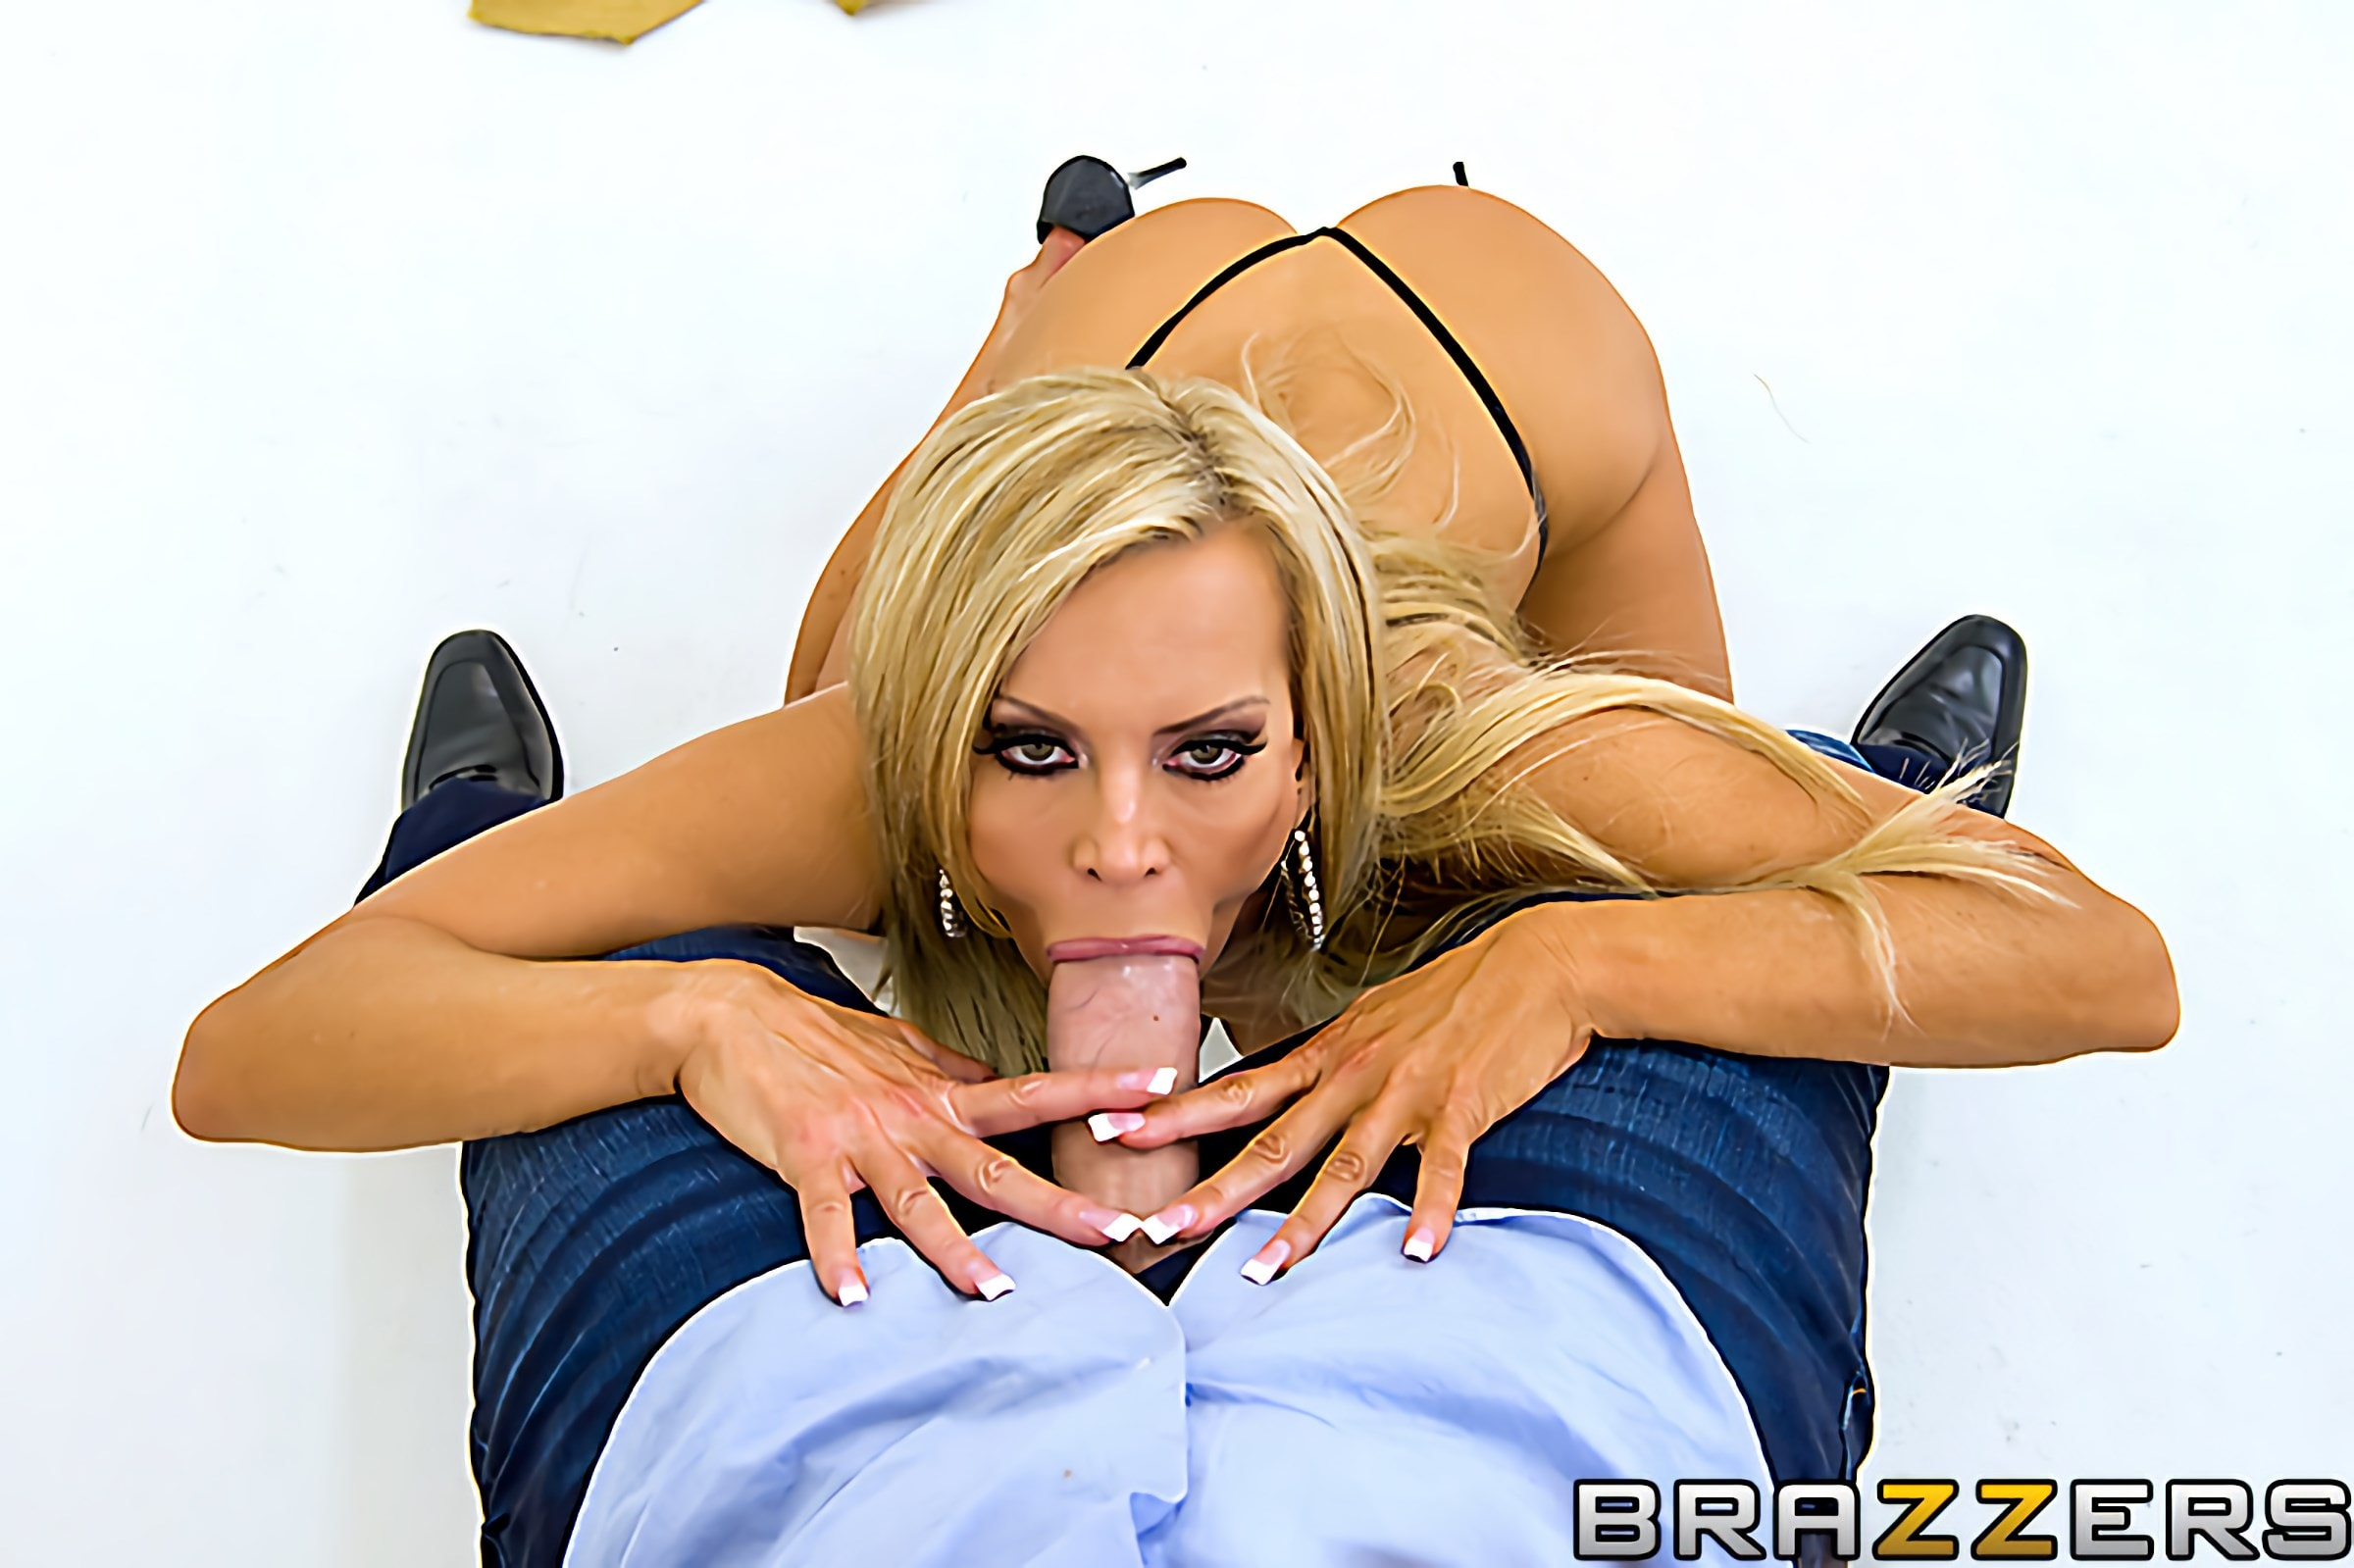 Brazzers 'Centerfold Me Over' starring Amber Lynn (Photo 5)